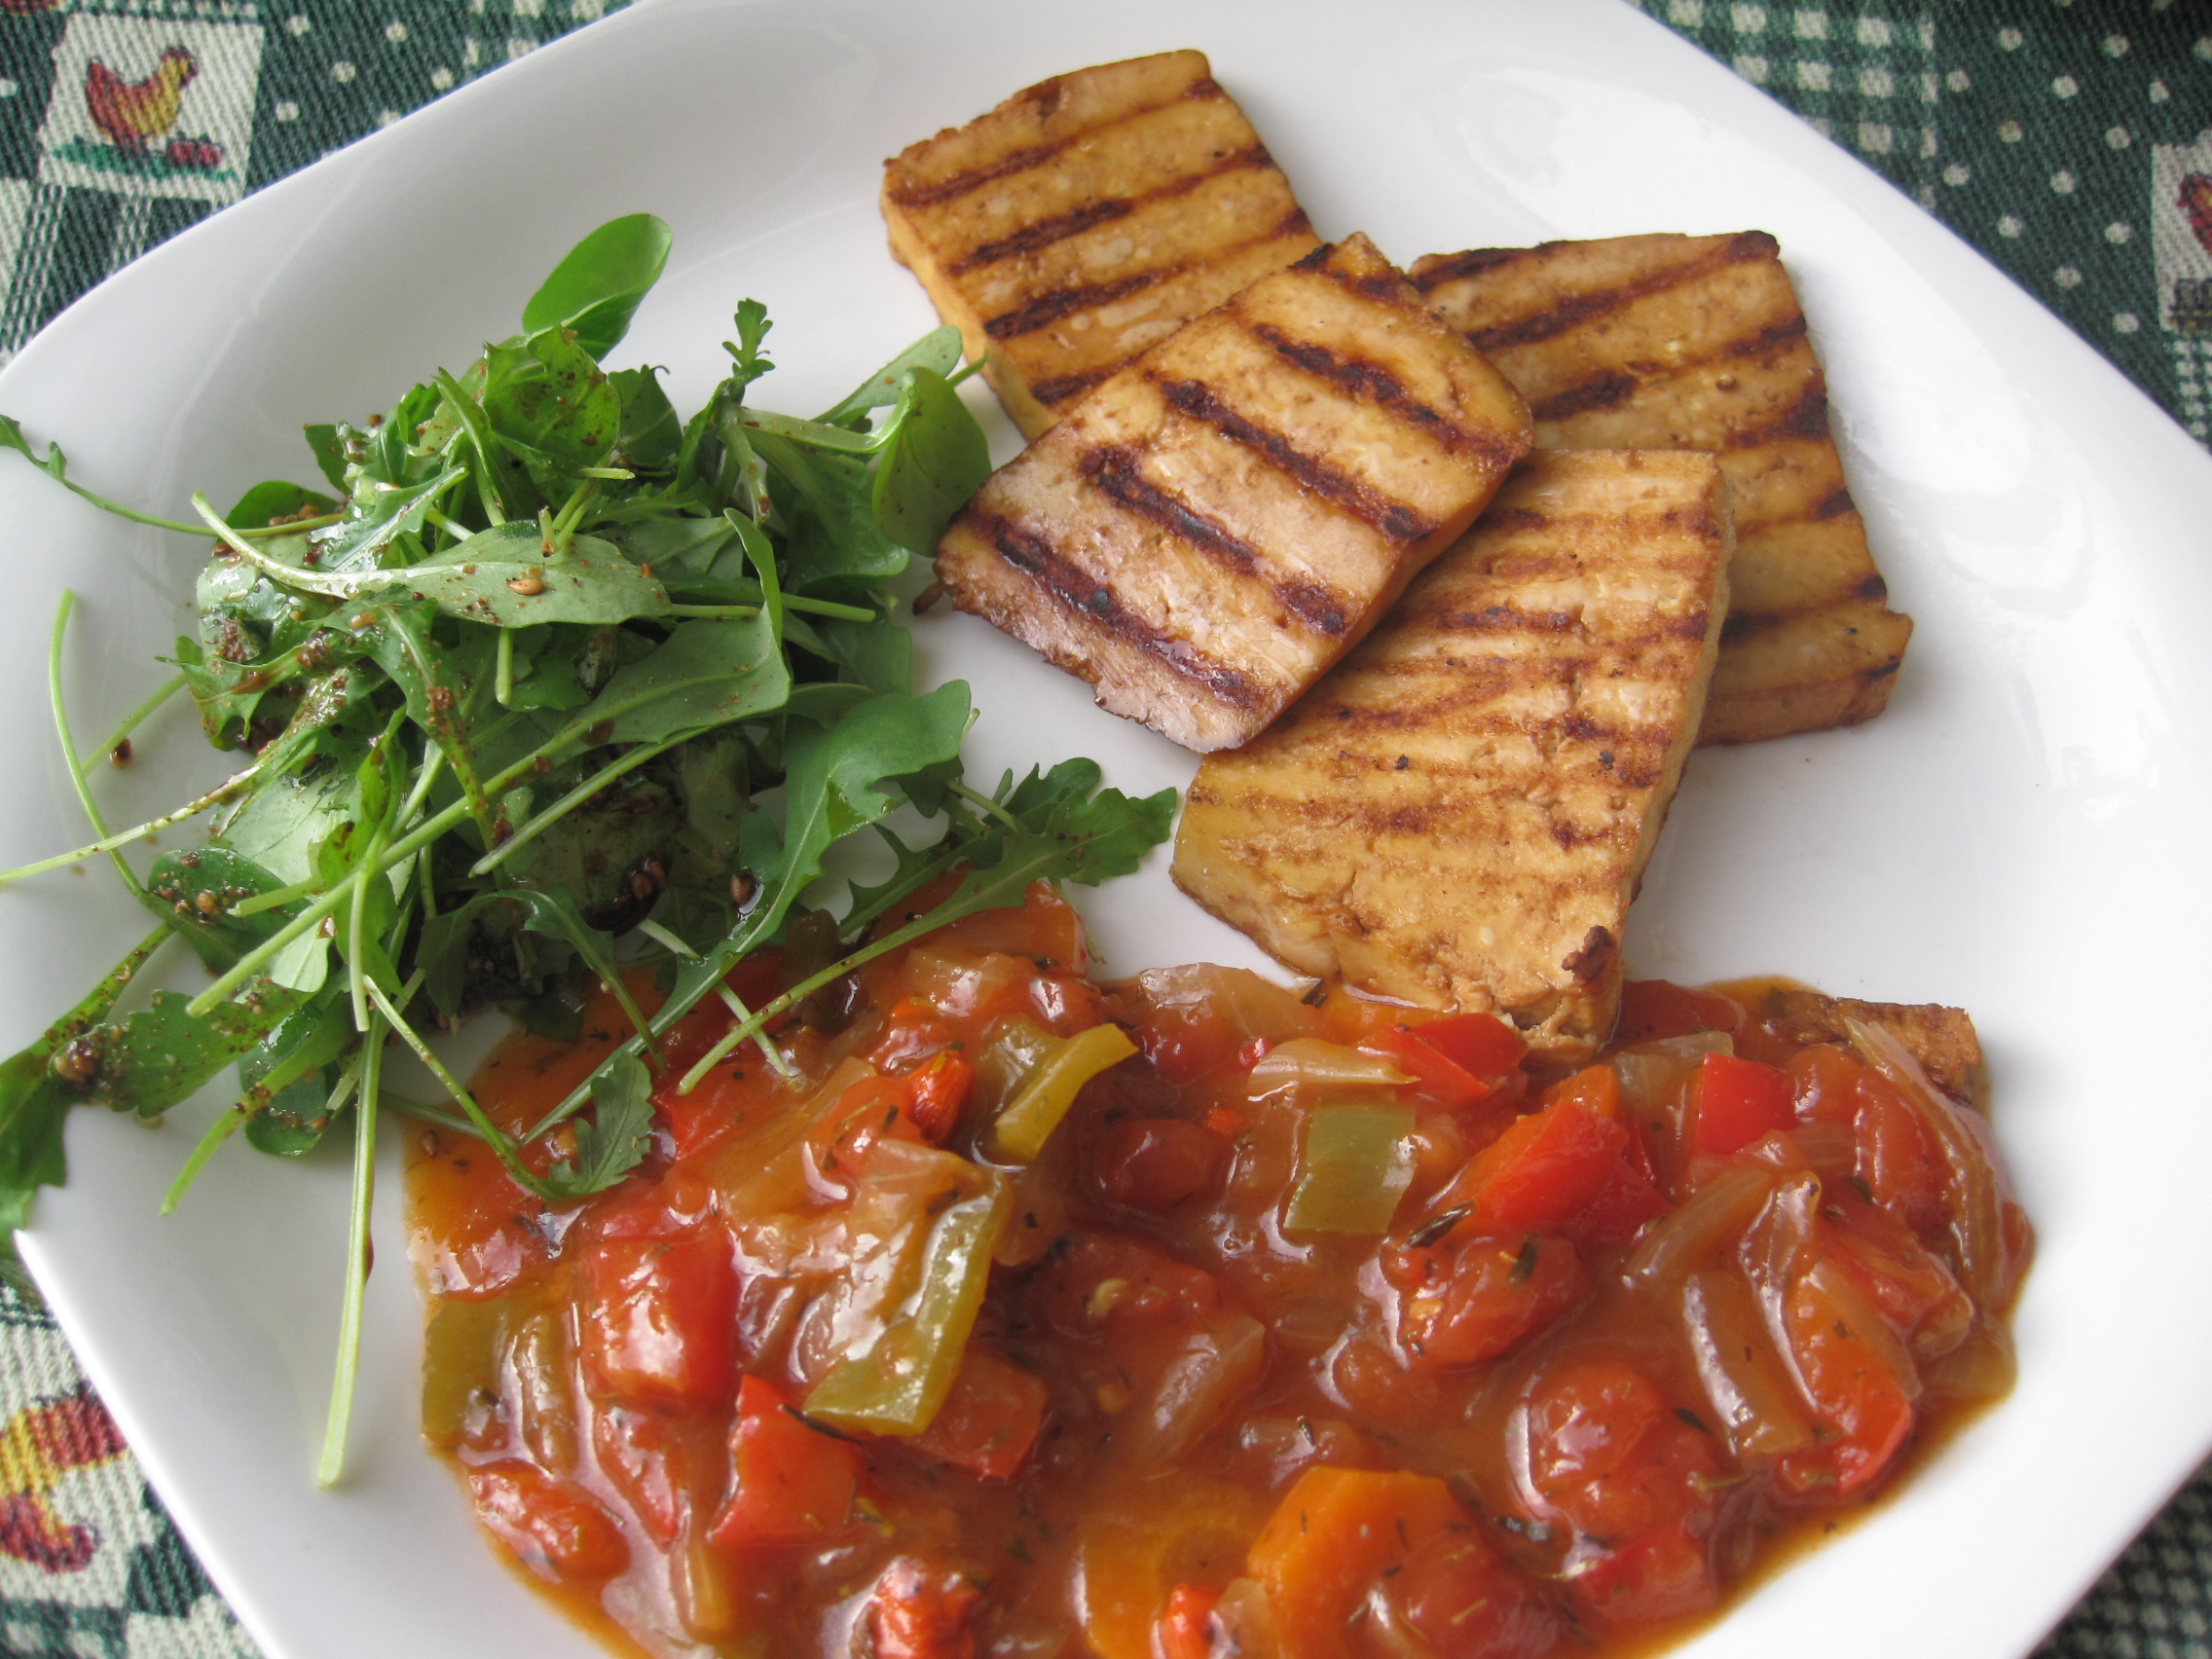 A plate of soy-protein rich grilled tofu, vegetables, and a salad